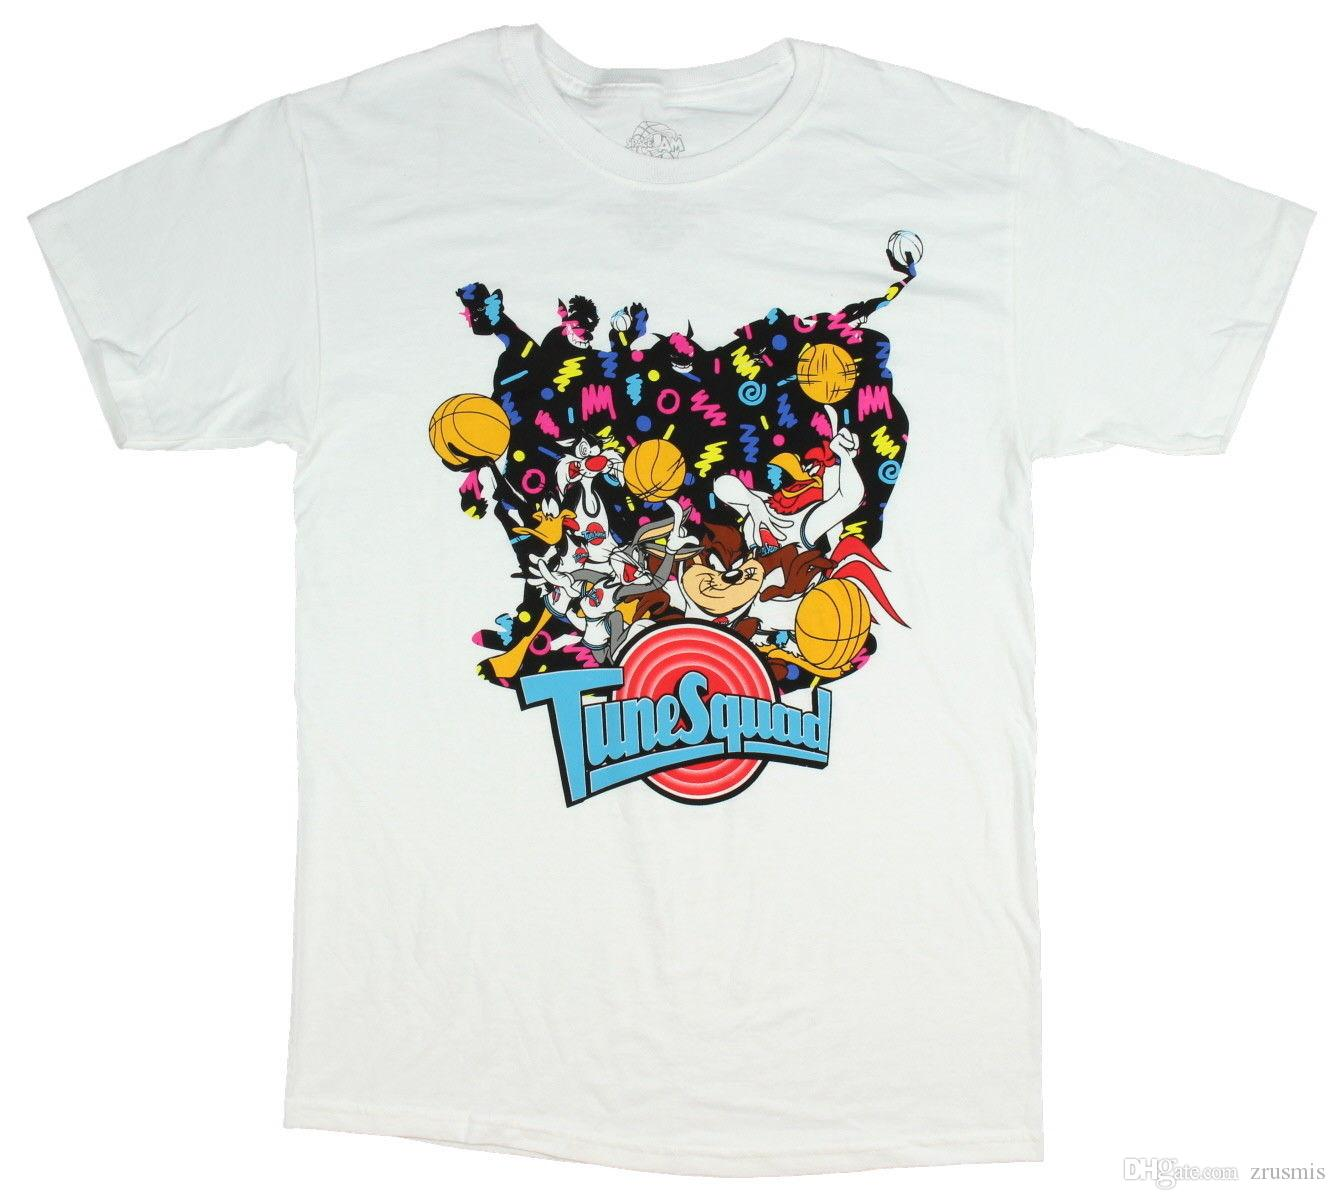 c9e9a5548164 Looney Tunes Space Jam Shirt Tune Squad Men S Movie Poster T Shirt Medium  Best Funny Shirts Funny Print Shirts From Zrusmis